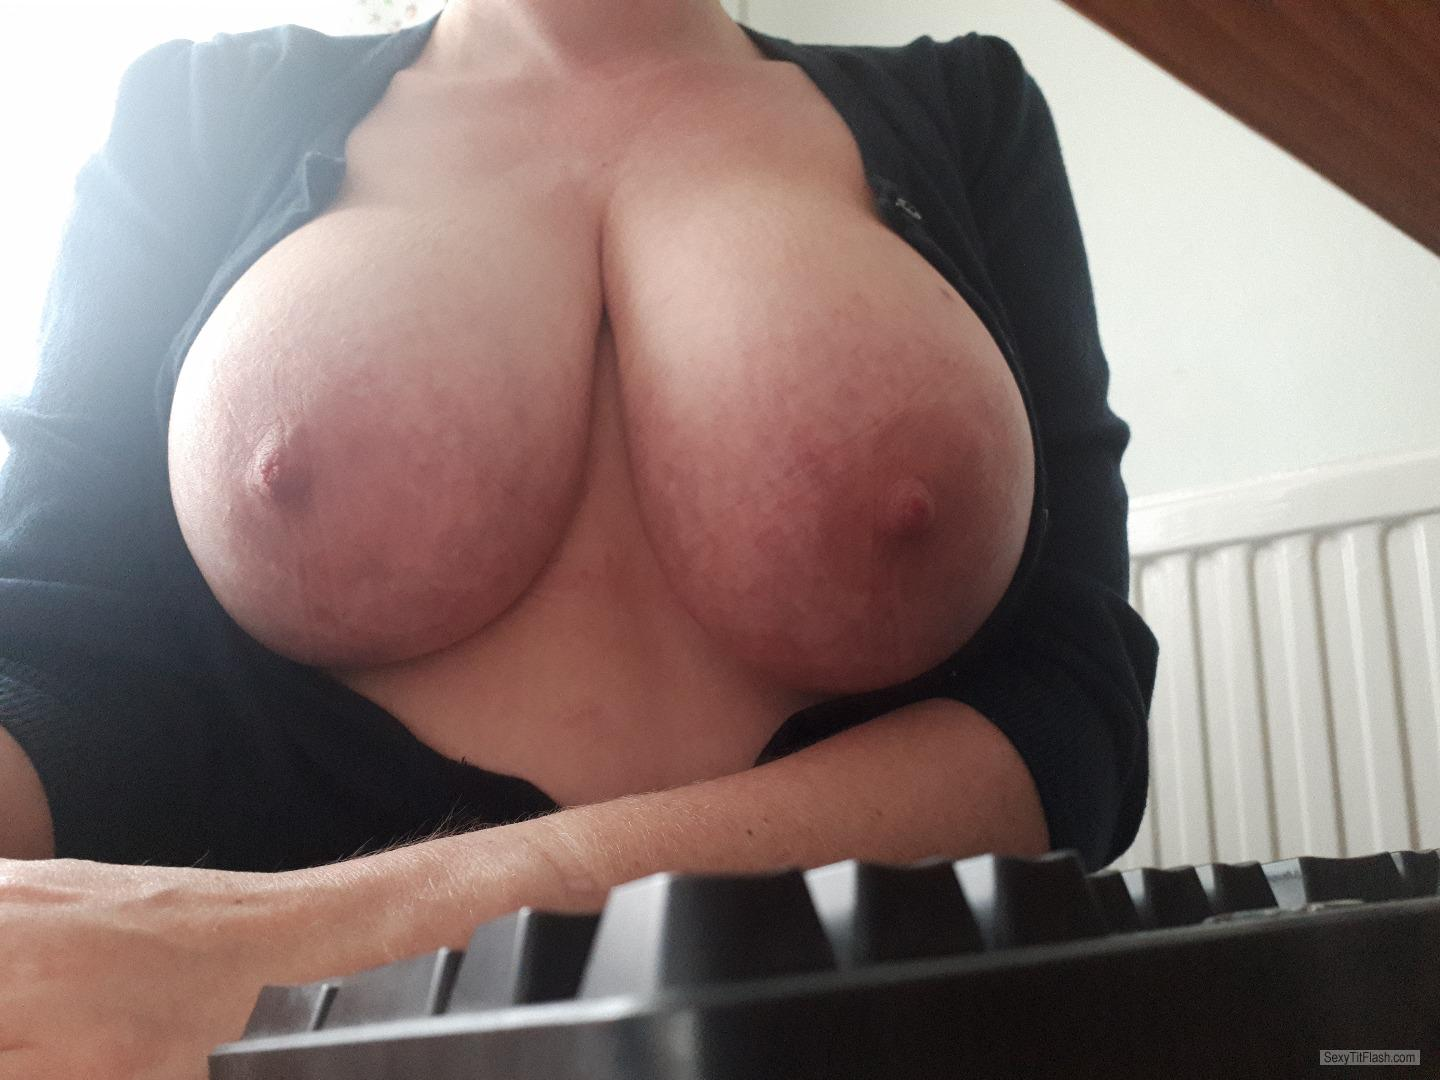 My Big Tits Selfie by Busty1975